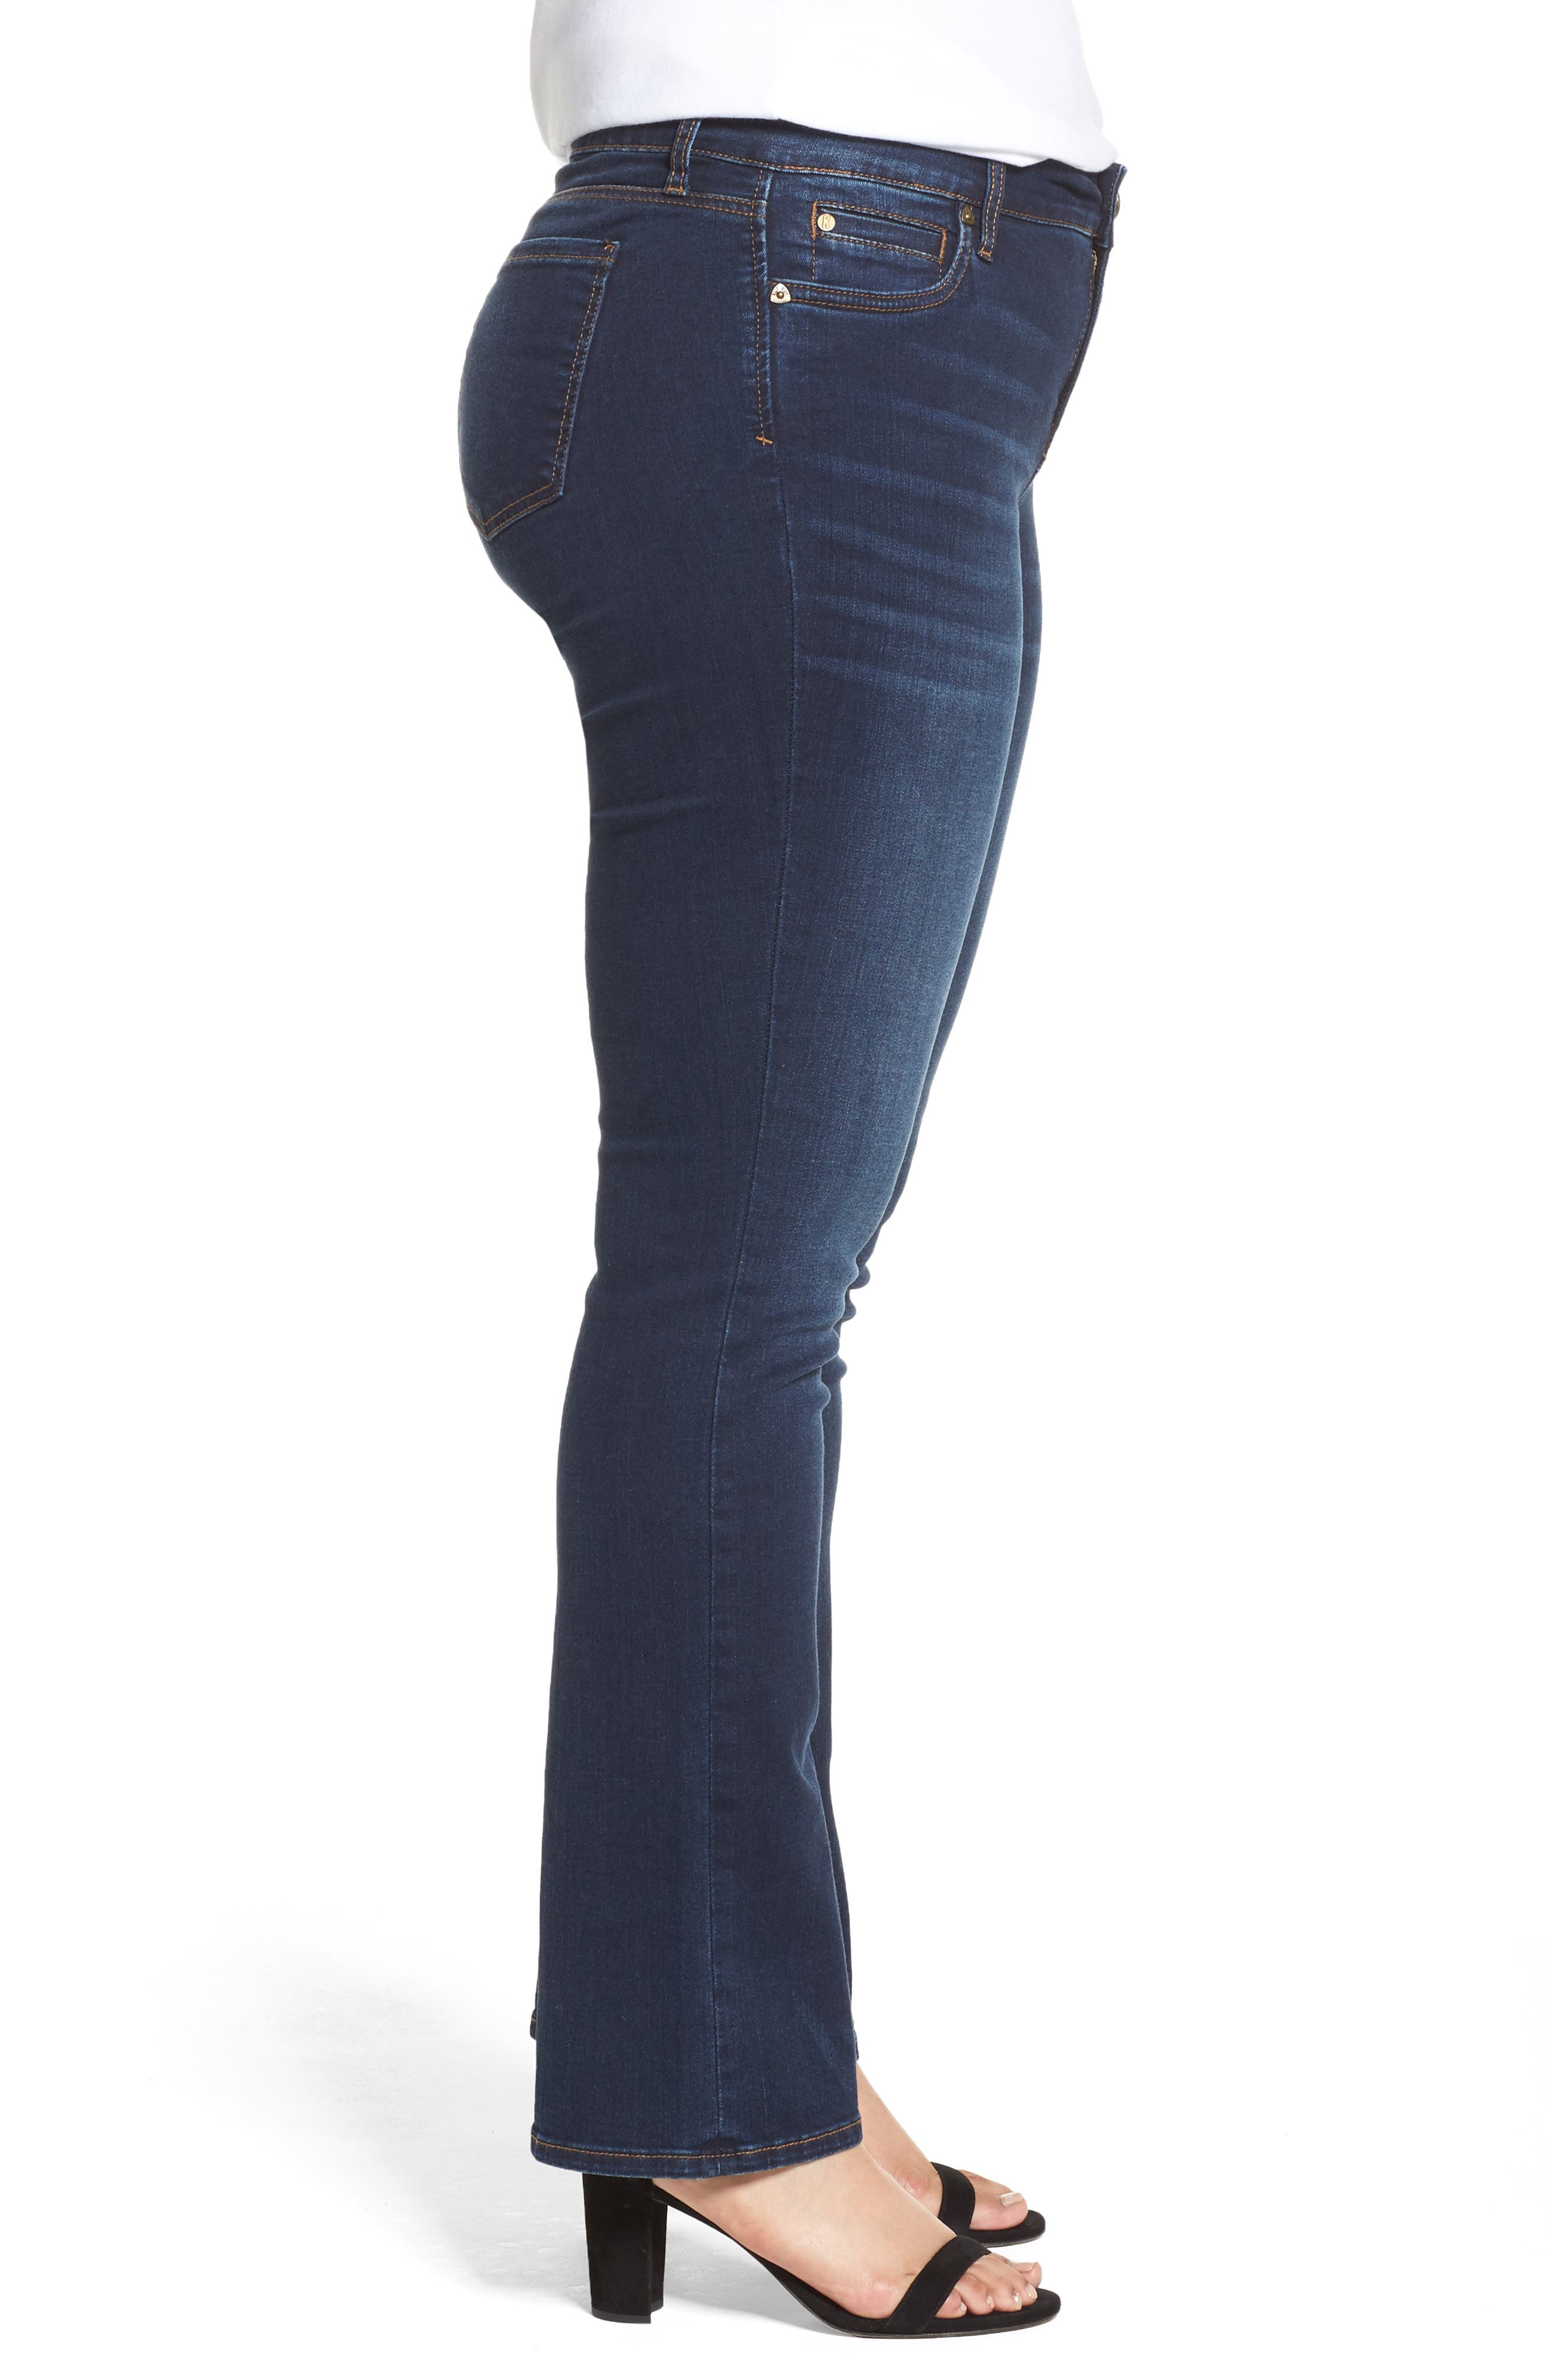 Alternate Image 3  - KUT from the Kloth Natalie High Waist Bootcut Jeans (Closeness) (Plus Size)